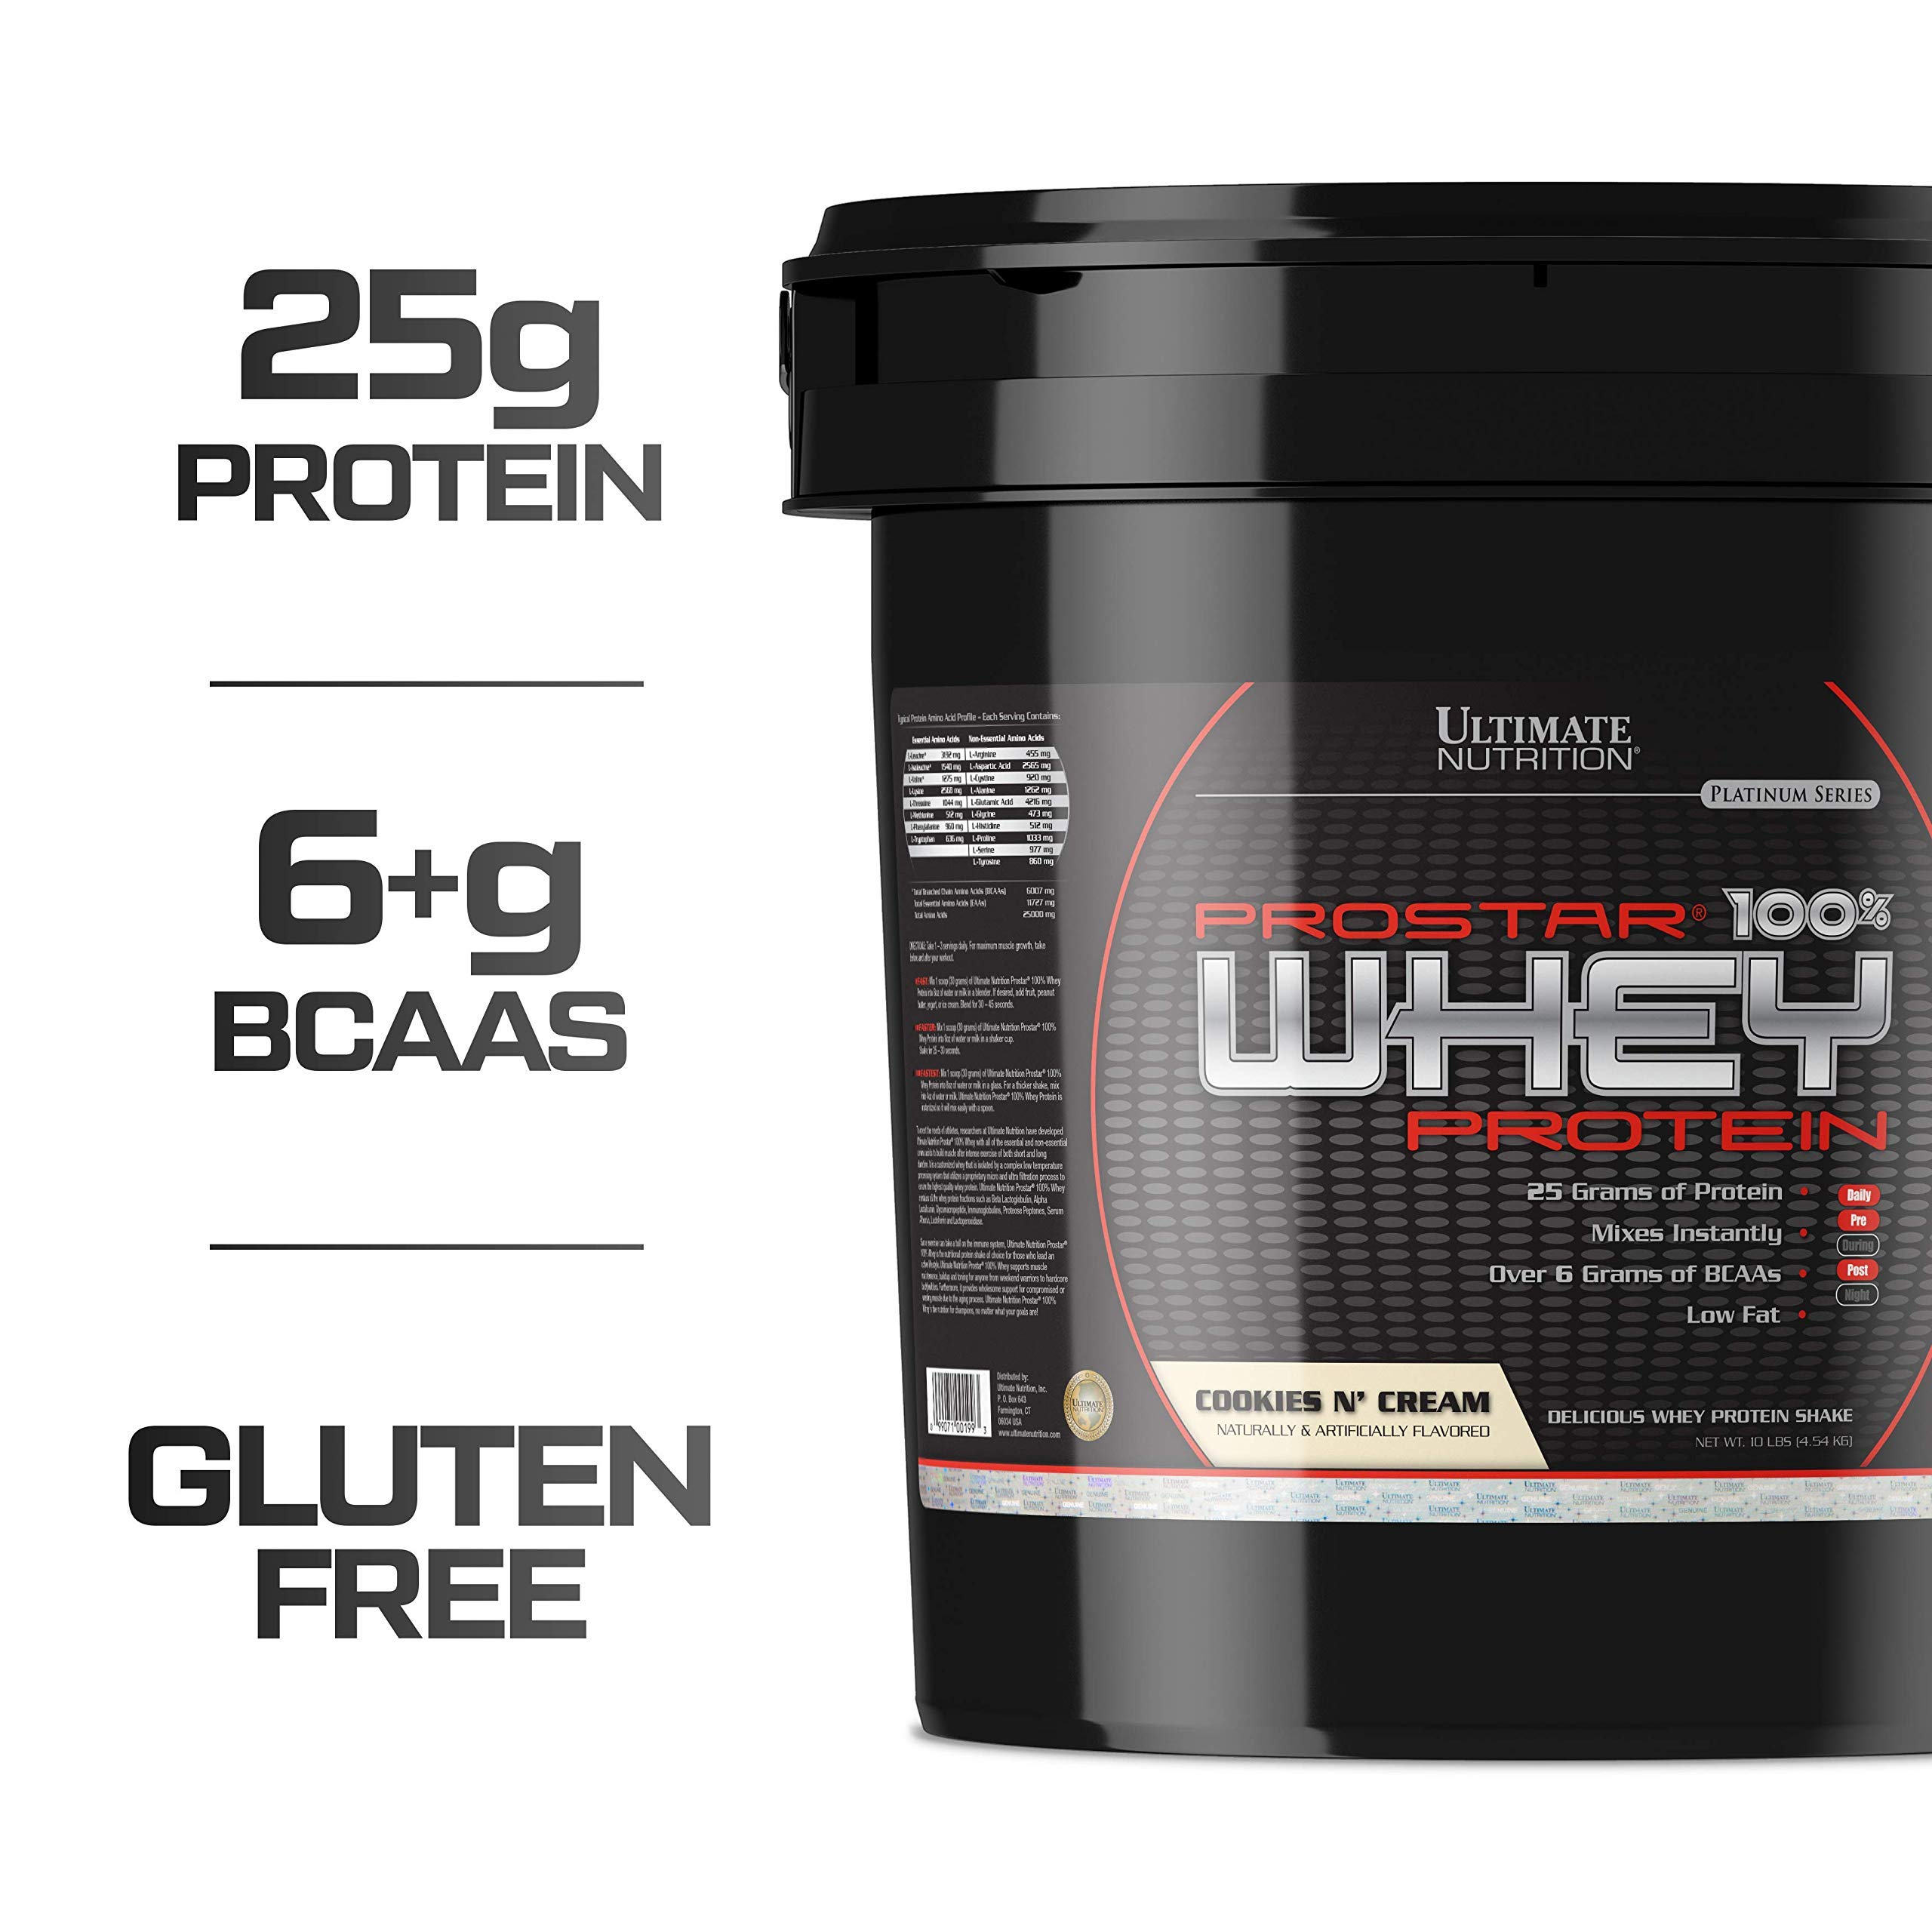 Ultimate Nutrition Prostar Whey Protein Powder Blend of Whey Concentrate Isolate and Peptides - Low Carb, Keto Friendly, 25 Grams of Protein - 150 Servings, Cookies N Cream, 10 Pounds by Ultimate Nutrition